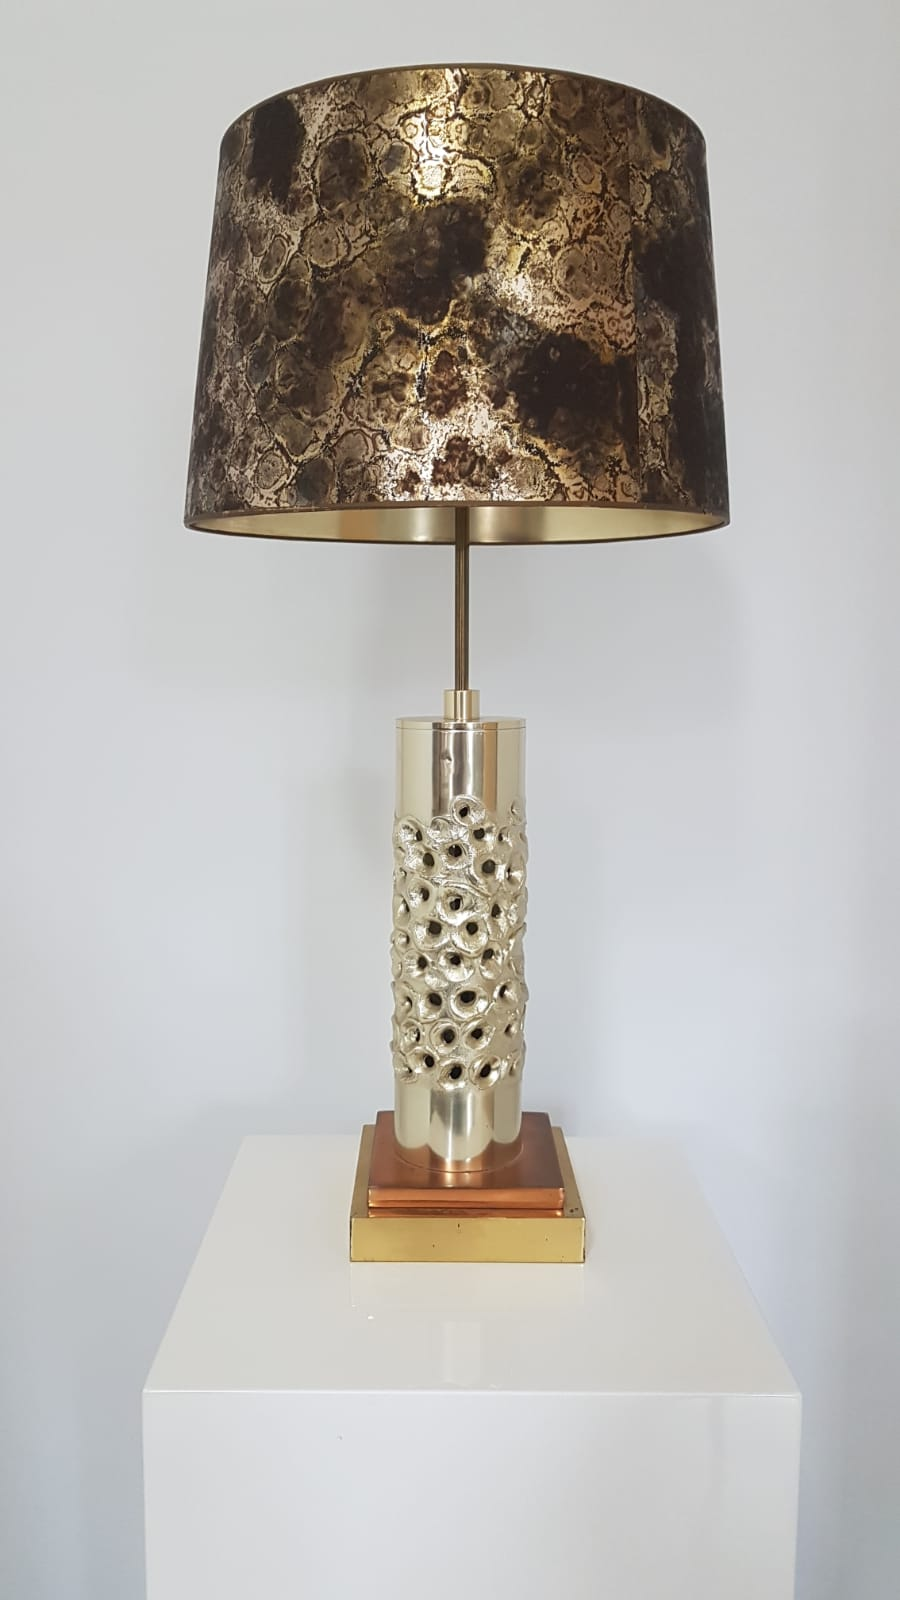 Unique brutalist table lamp - silver-plated aluminum - Willy Luyckx for Aluclair - 1960s